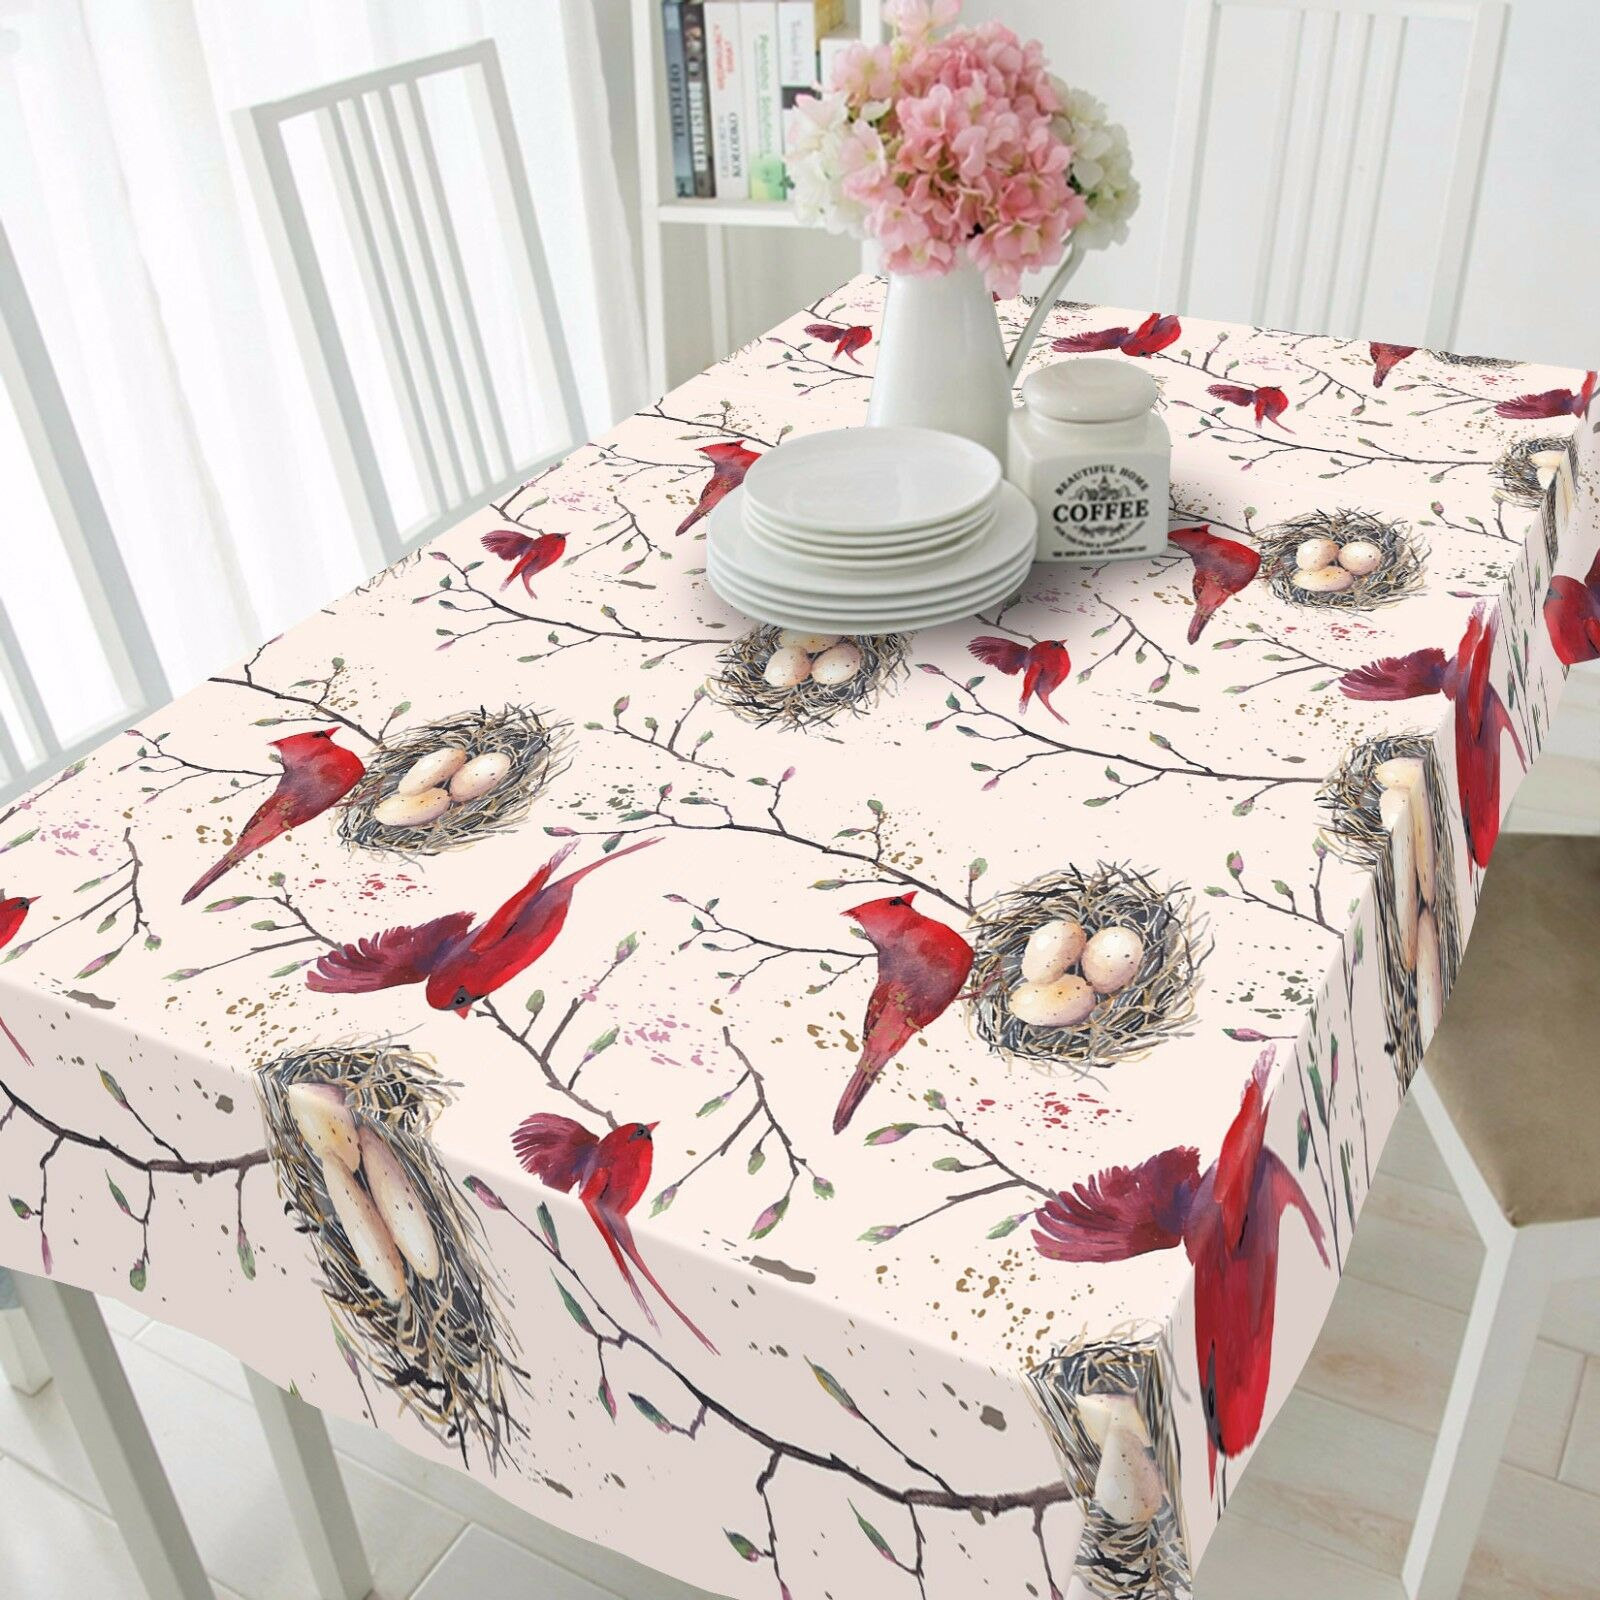 3D  Nest 4583 Tablecloth Table Cover Cloth Birthday Party Event AJ WALLPAPER AU